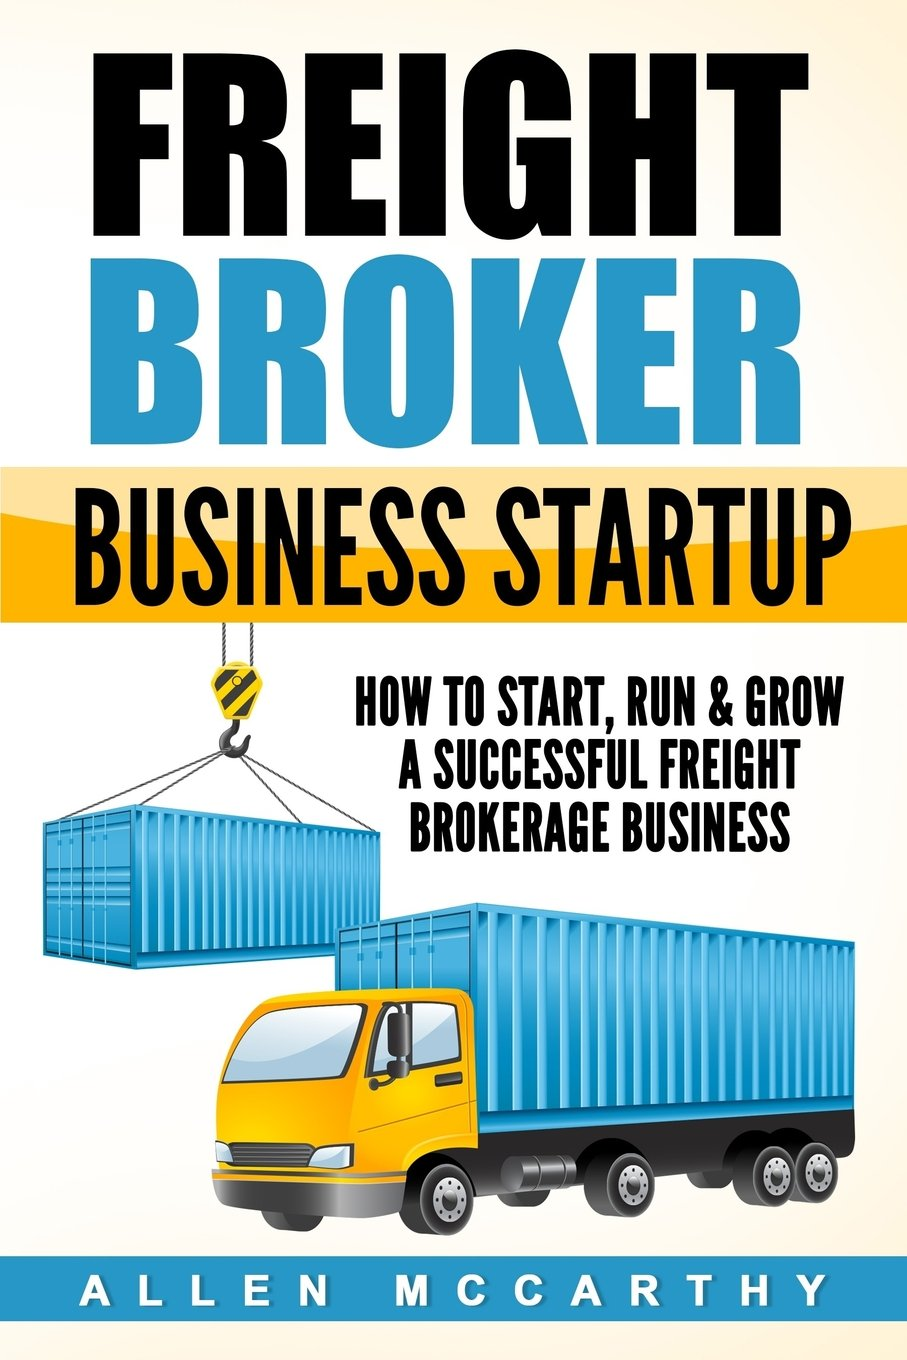 Freight Broker Business Startup Successful product image